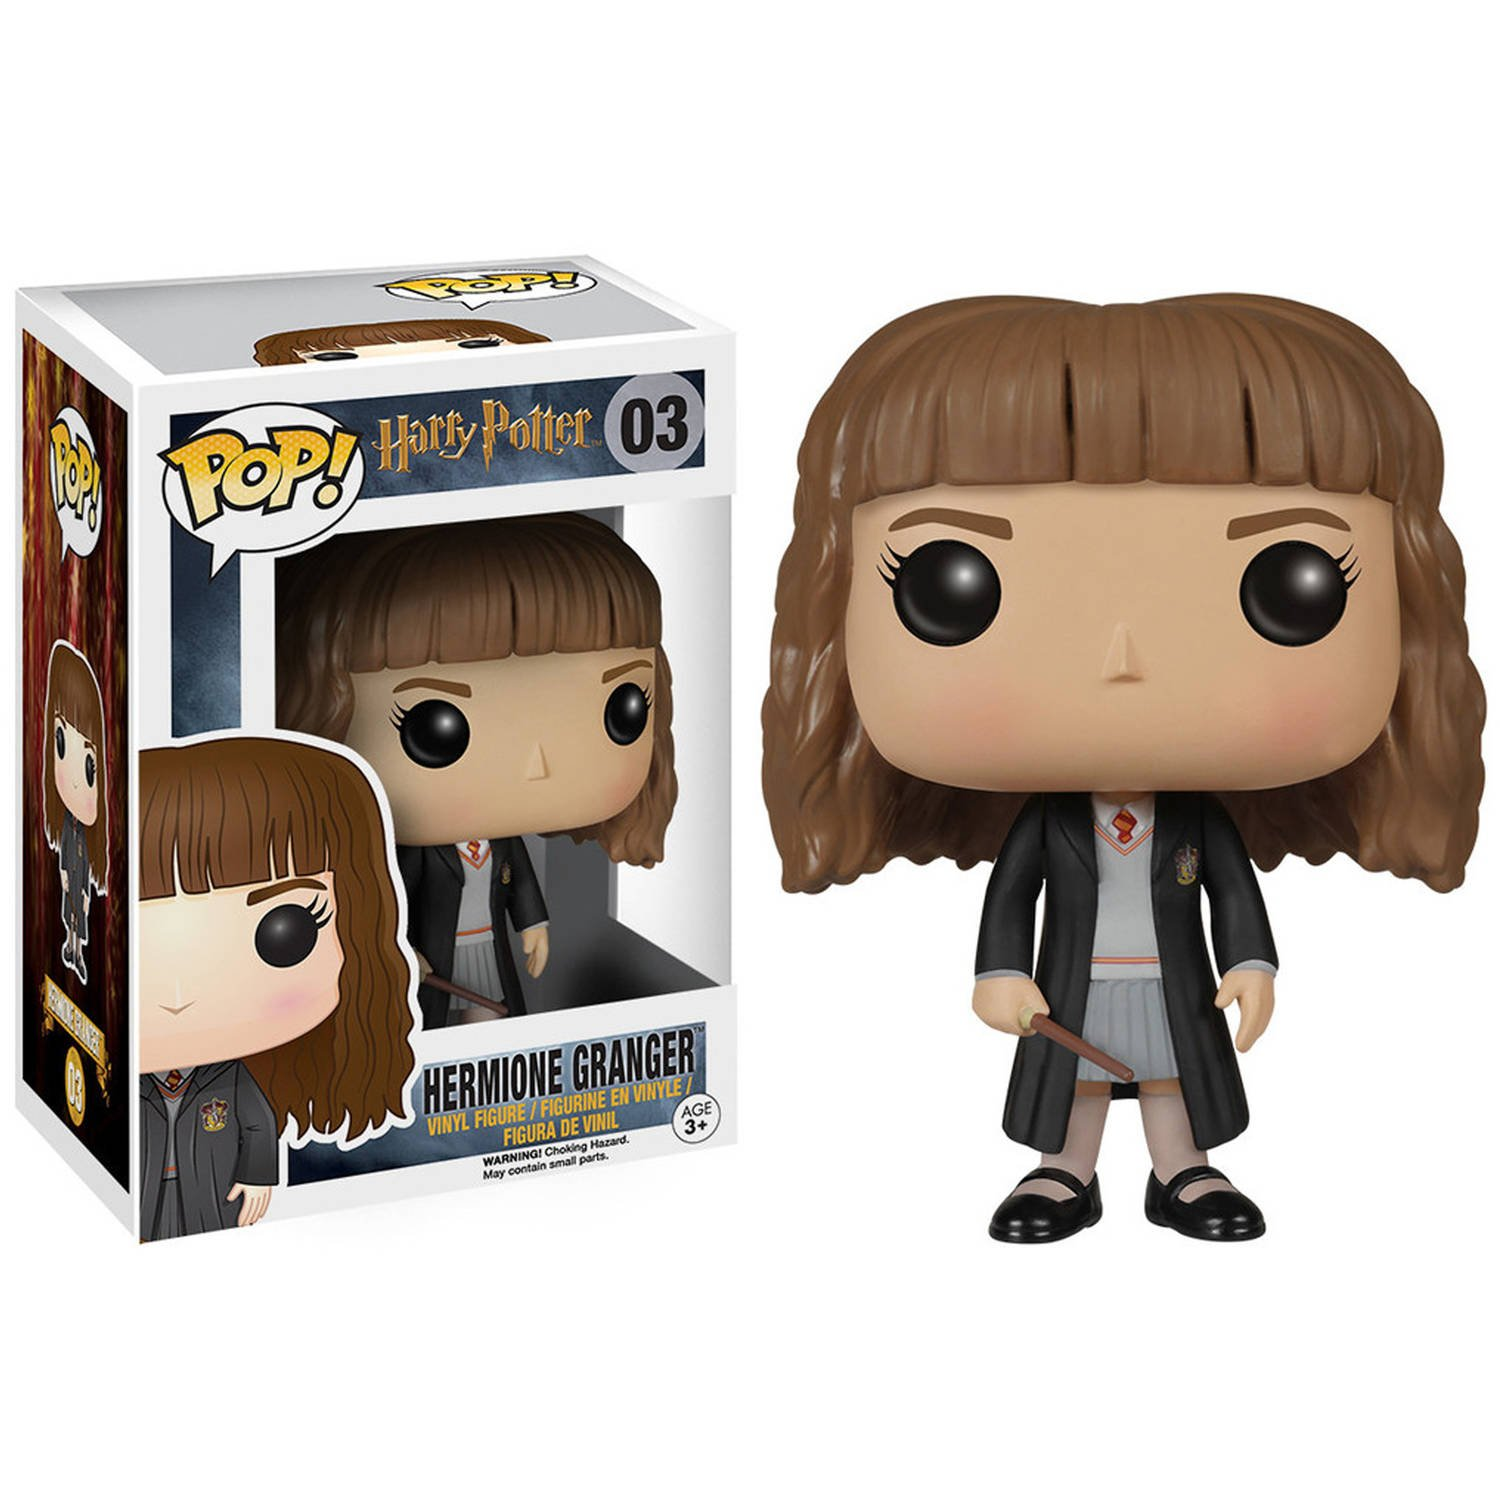 Amazon.com: Funko POP de Harry Potter Figuras de acció ...